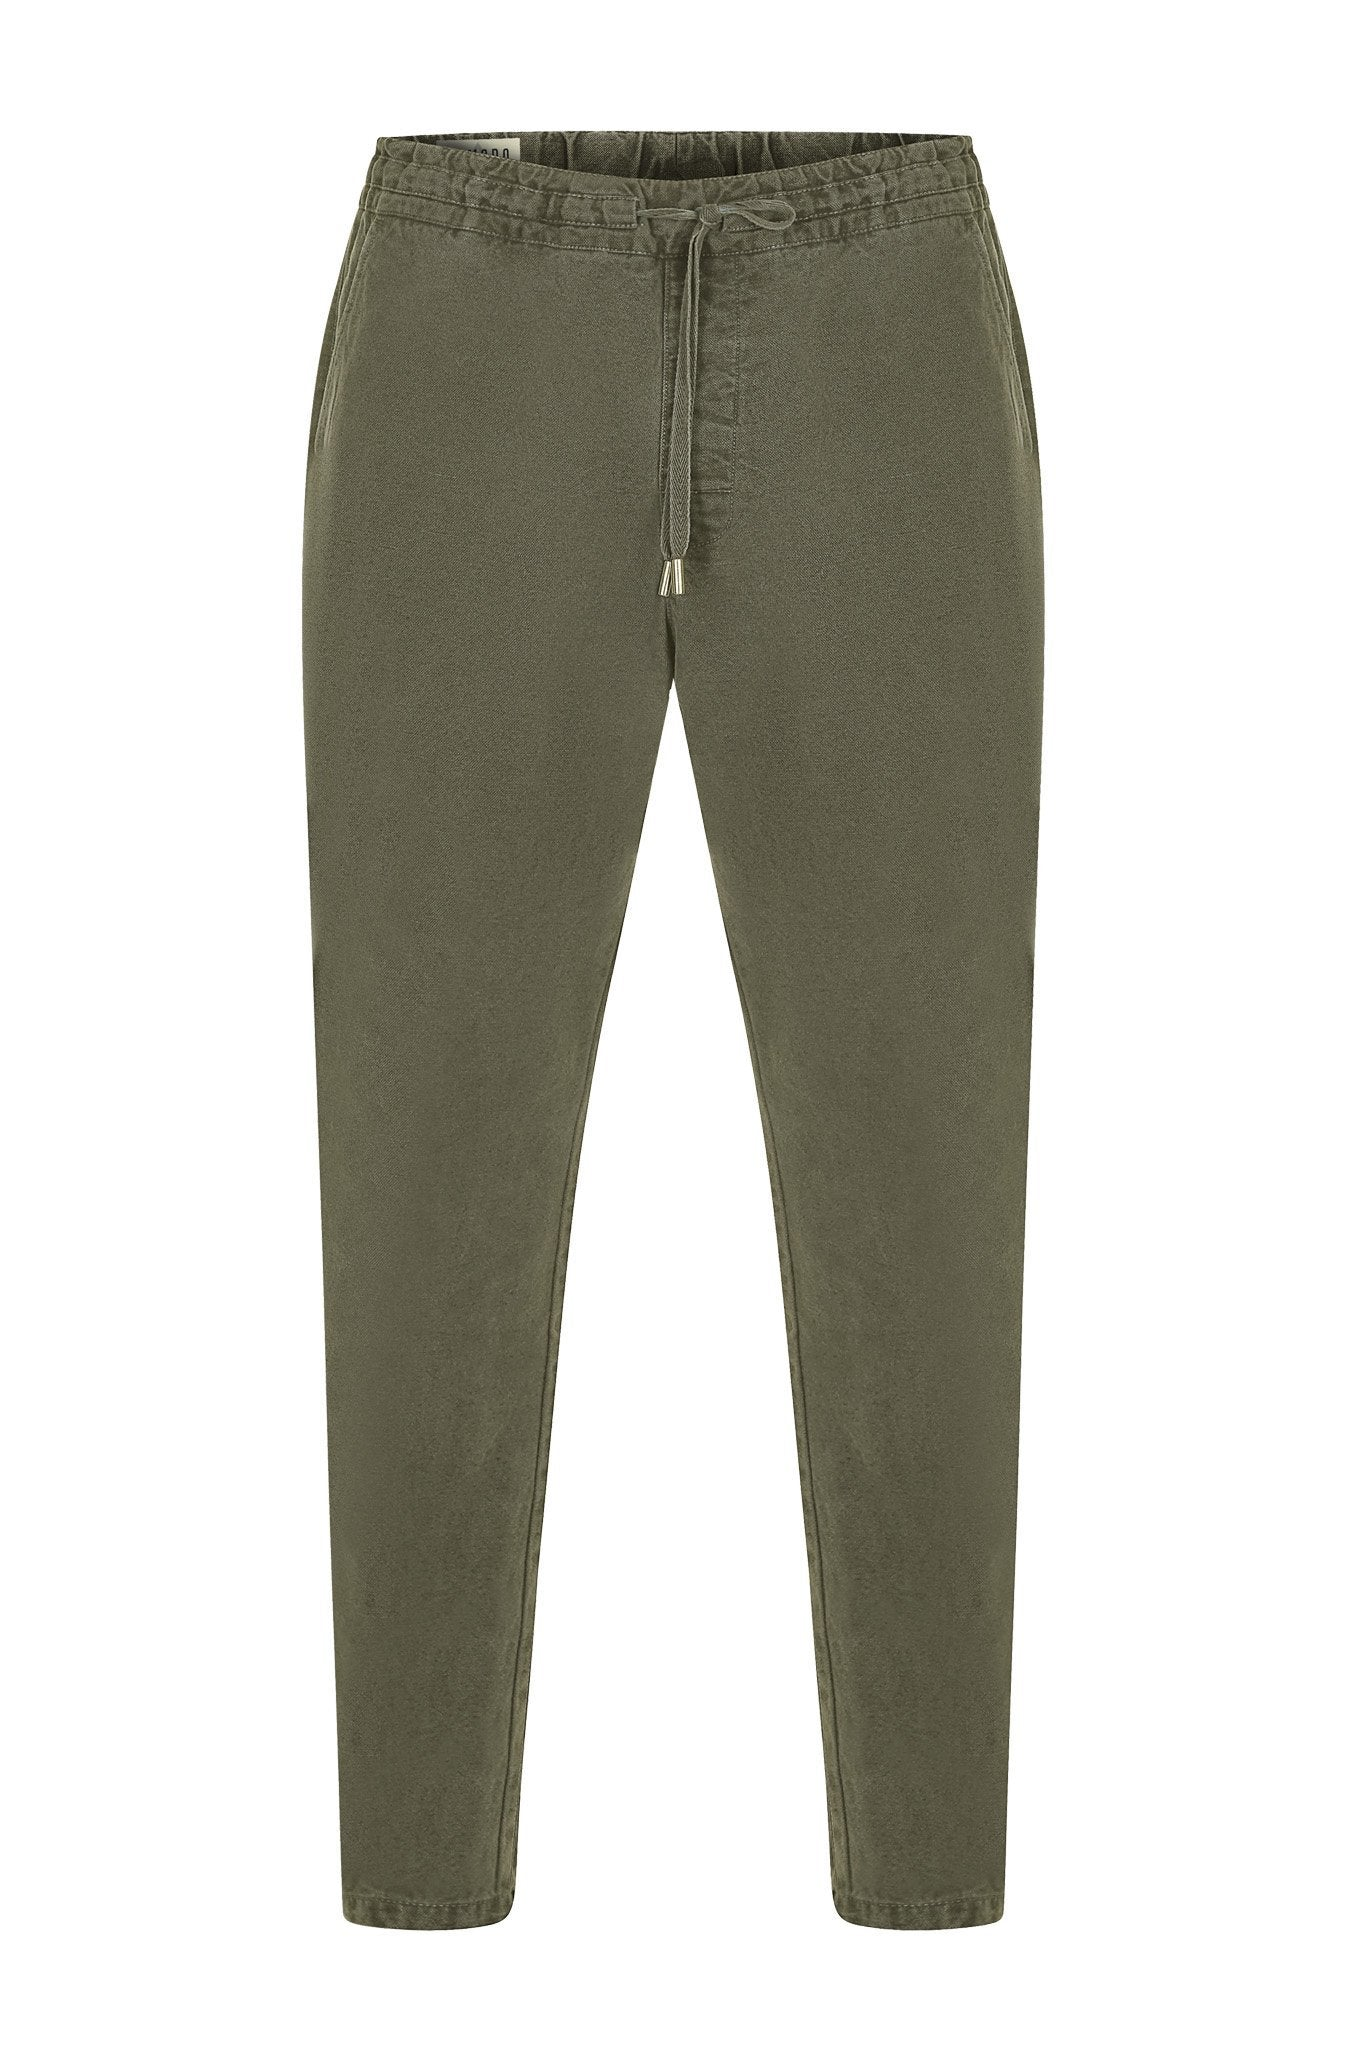 Trousers - AGUST Organic Cotton Draw Cord Cargos Khaki